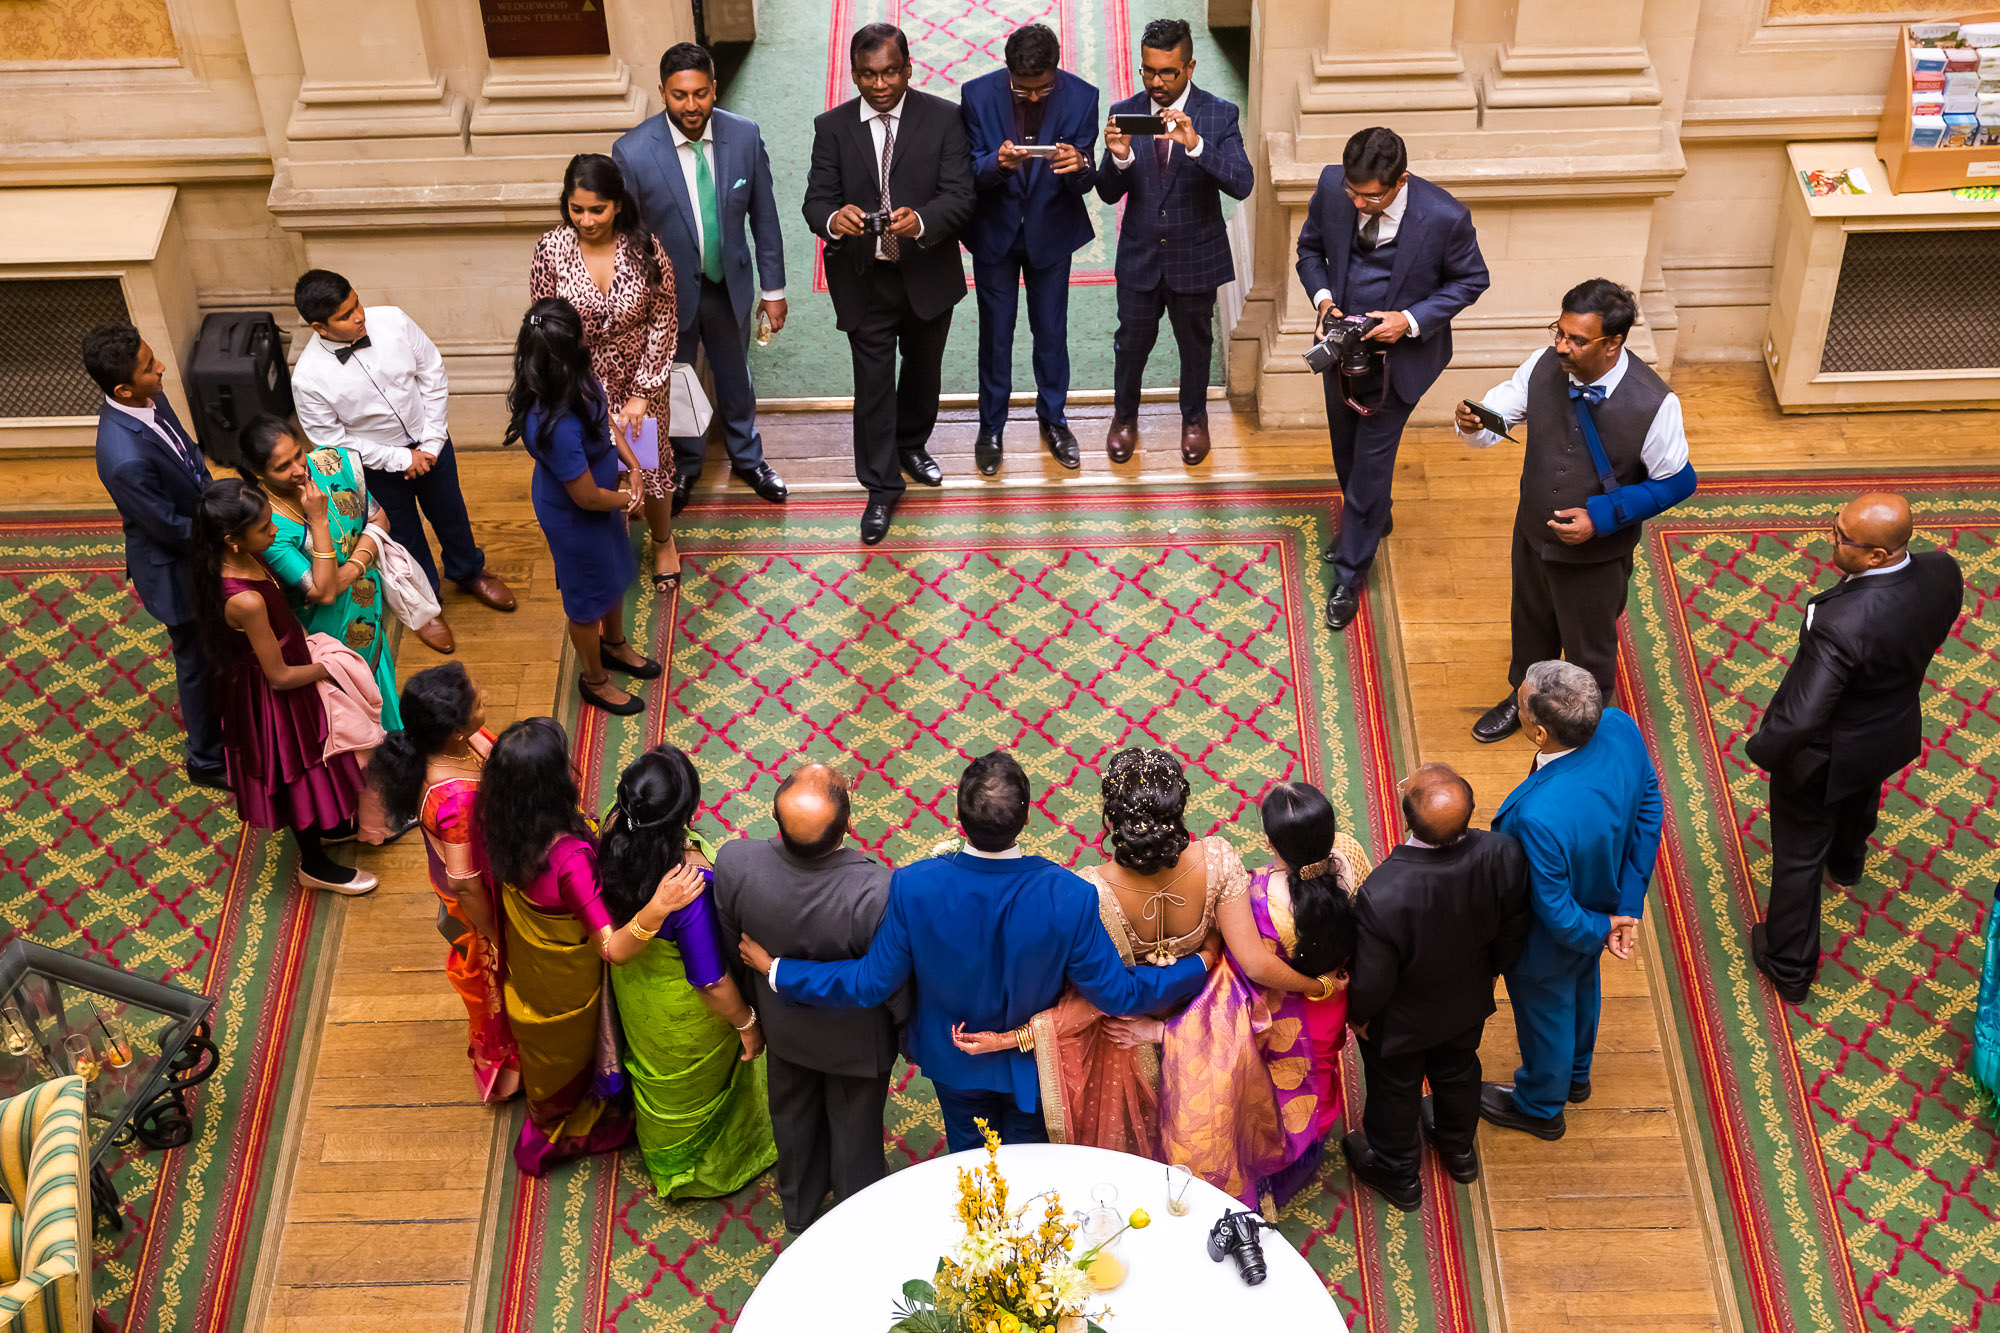 asian-wedding-hindu-tamil-photographer-heythorpe-oxford-0260.jpg